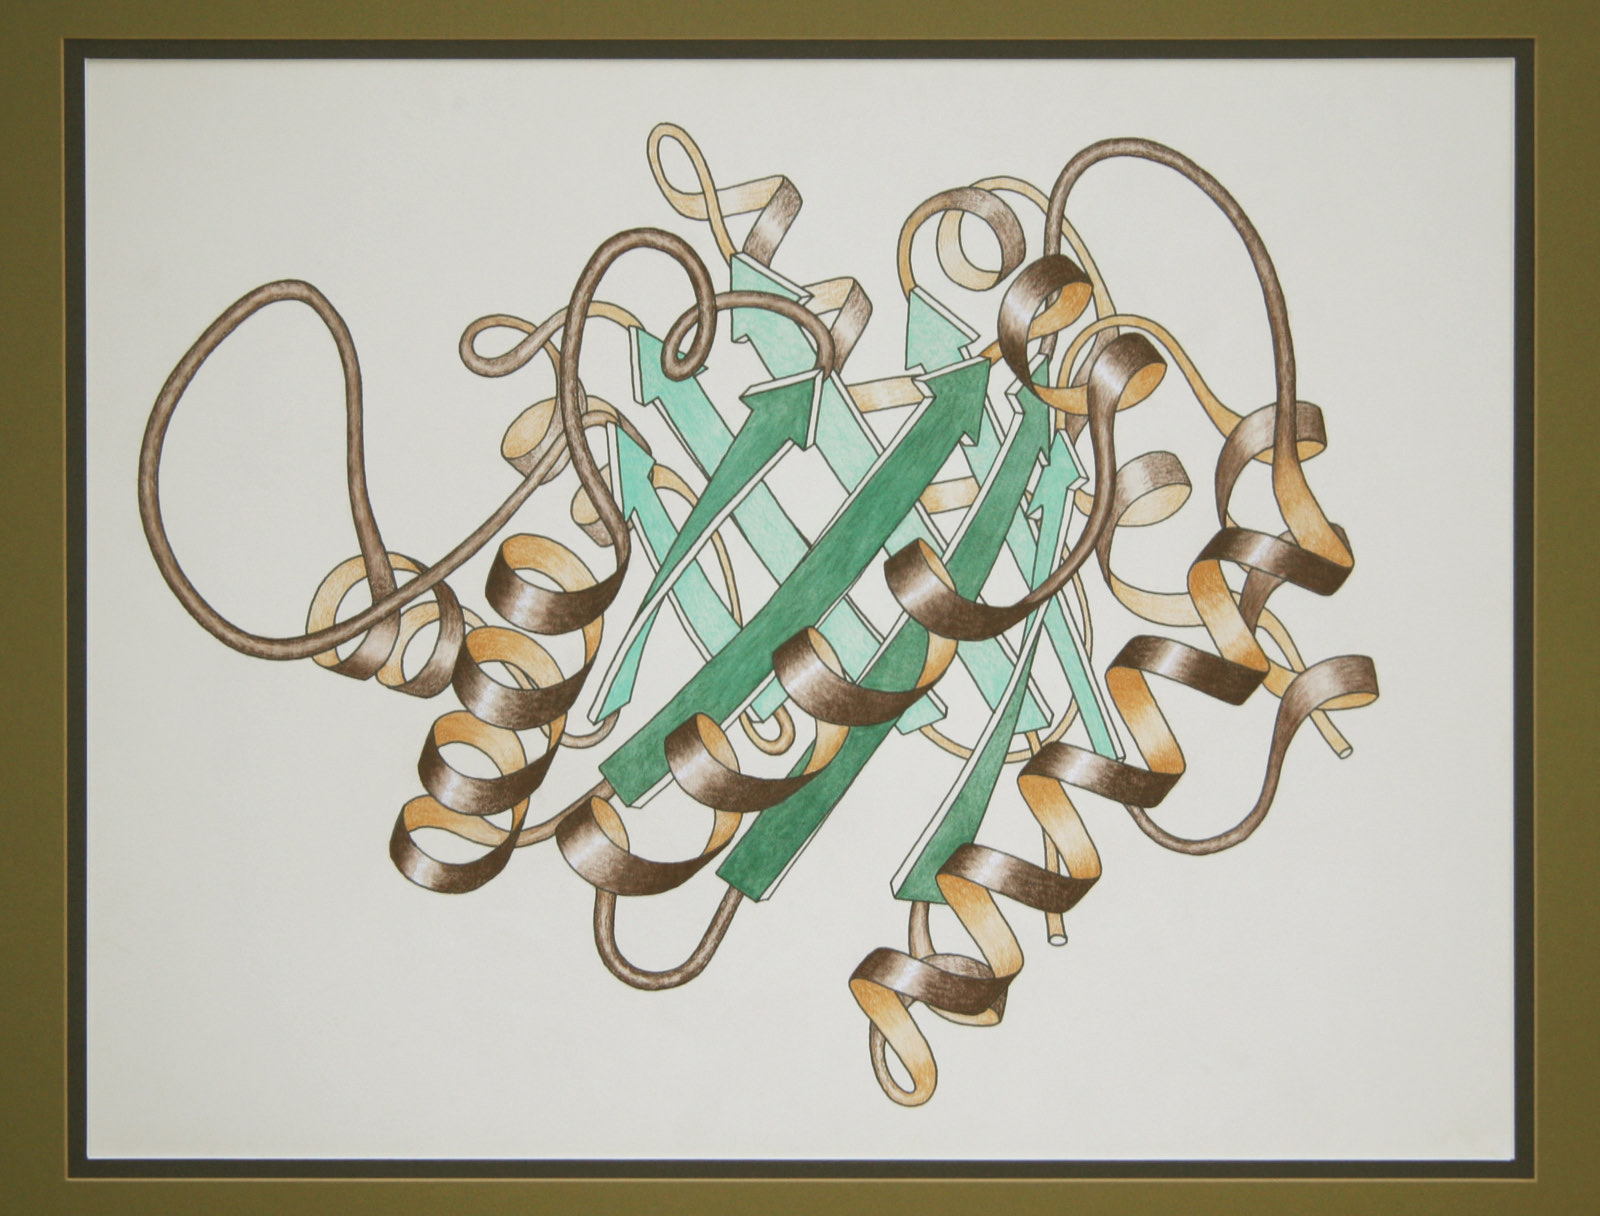 The most iconic of Richardson's ribbon drawings, Triose Phosphate Isomerase Ribbon. This image was Wikipedia's picture of the day on November 9, 2009.